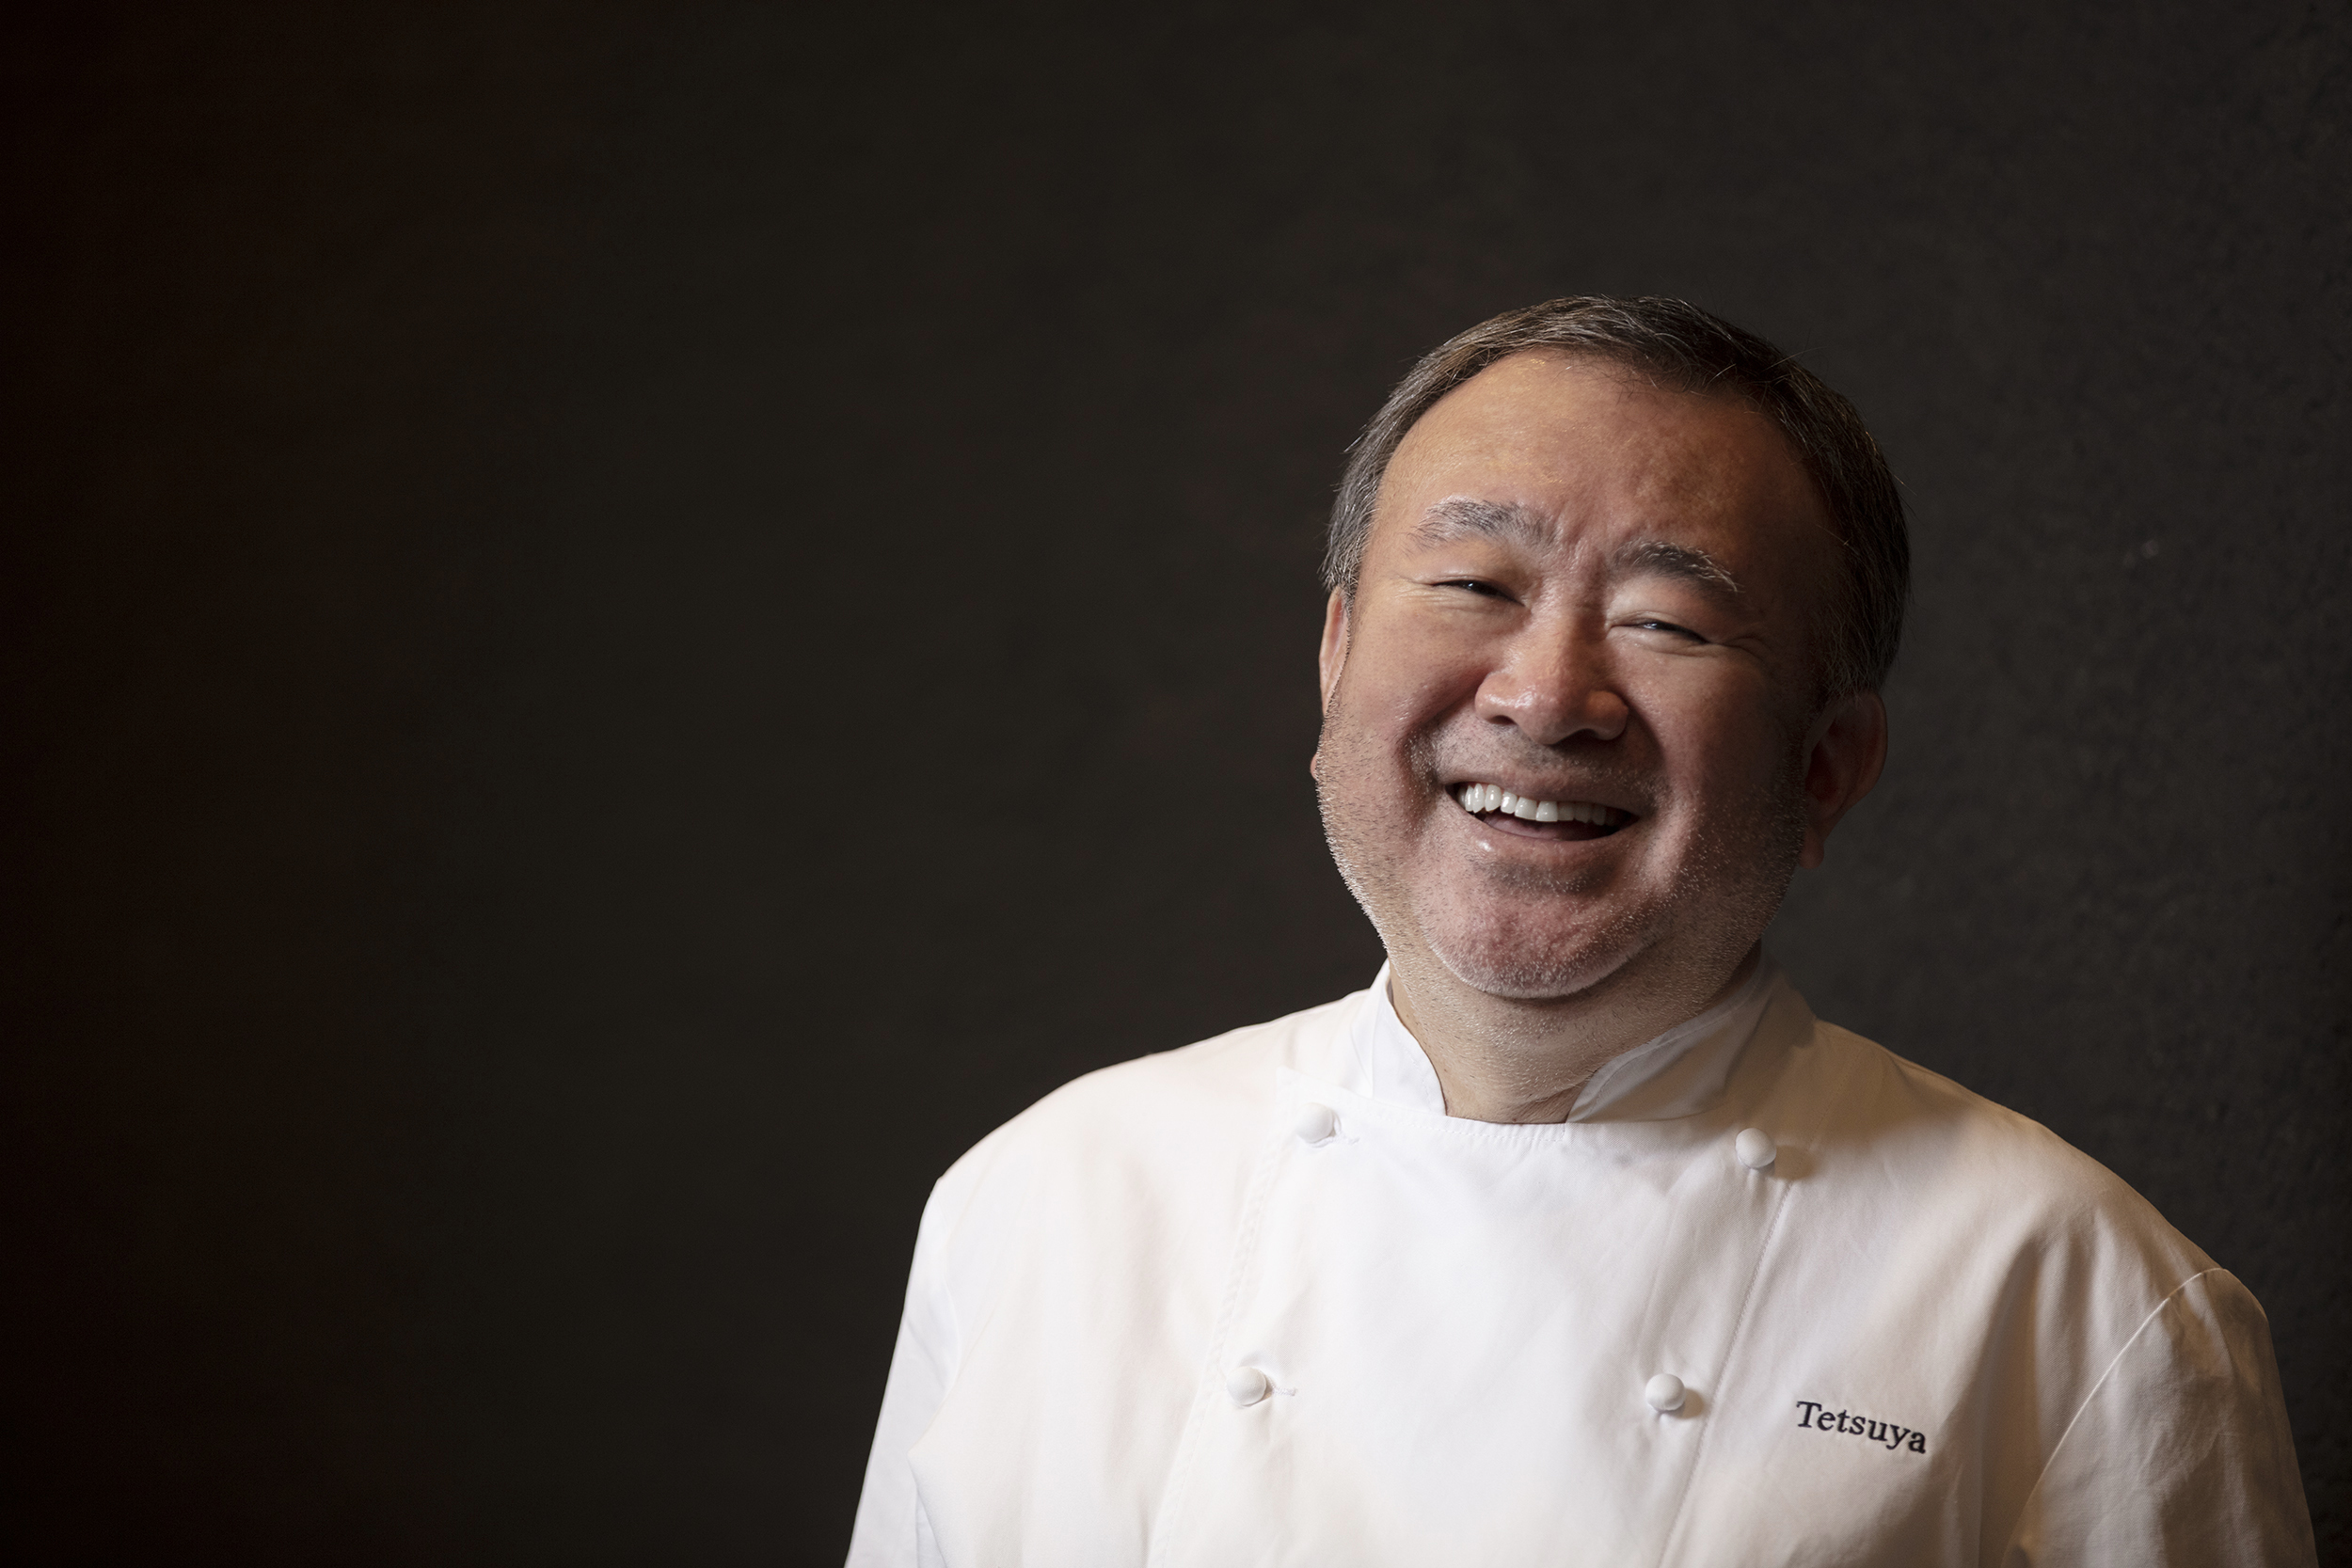 A Japanese man in a white chef's coat